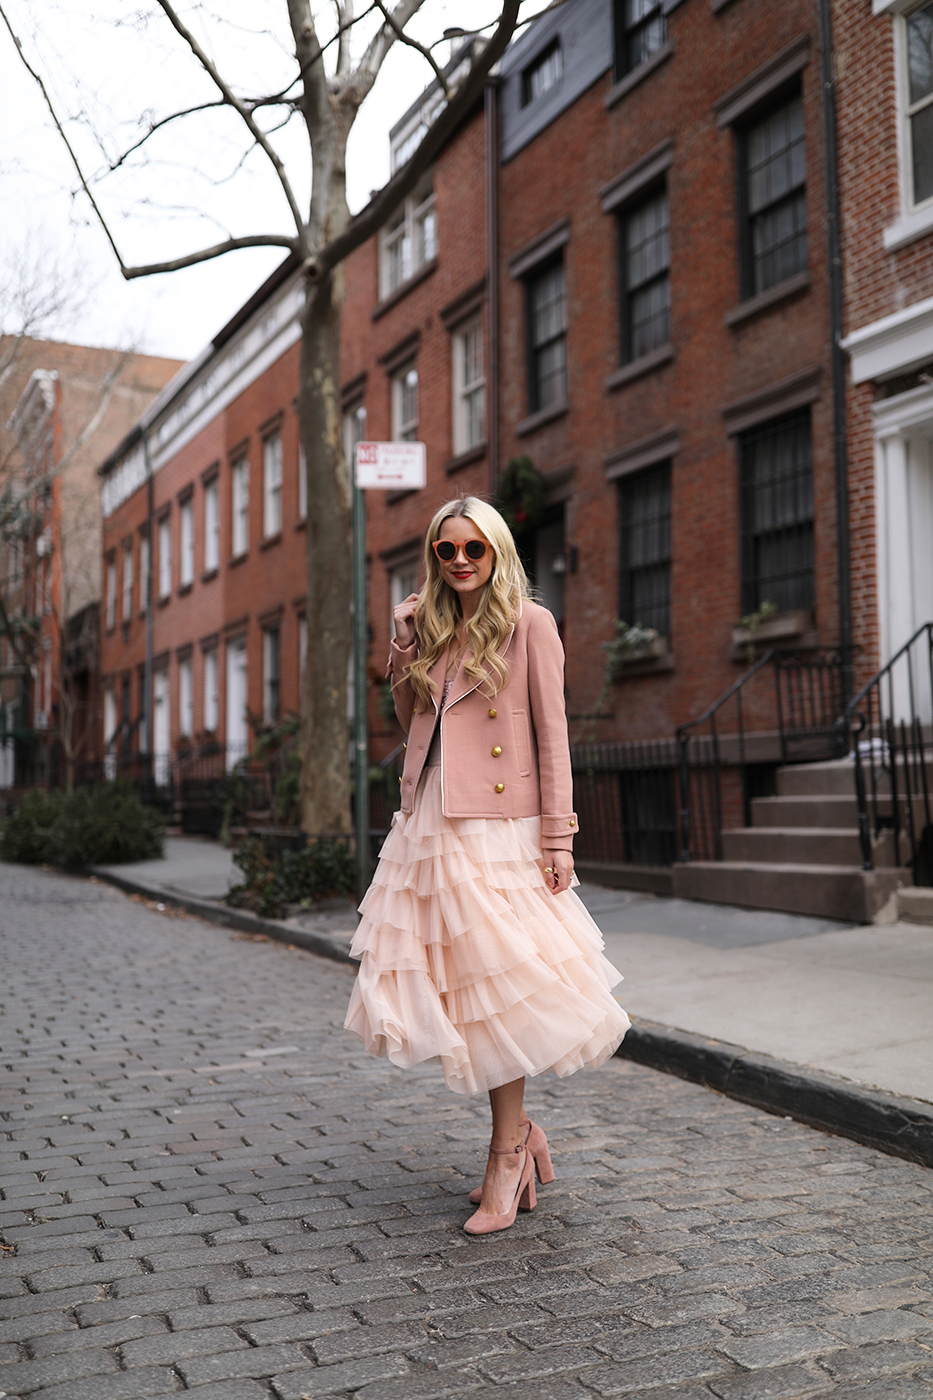 https://i2.wp.com/the-atlantic-pacific.com/wp-content/uploads/2017/01/blair-eadie-atlantic-pacific-blogger-nyc-west-village-winter-outfit-holiday.jpg